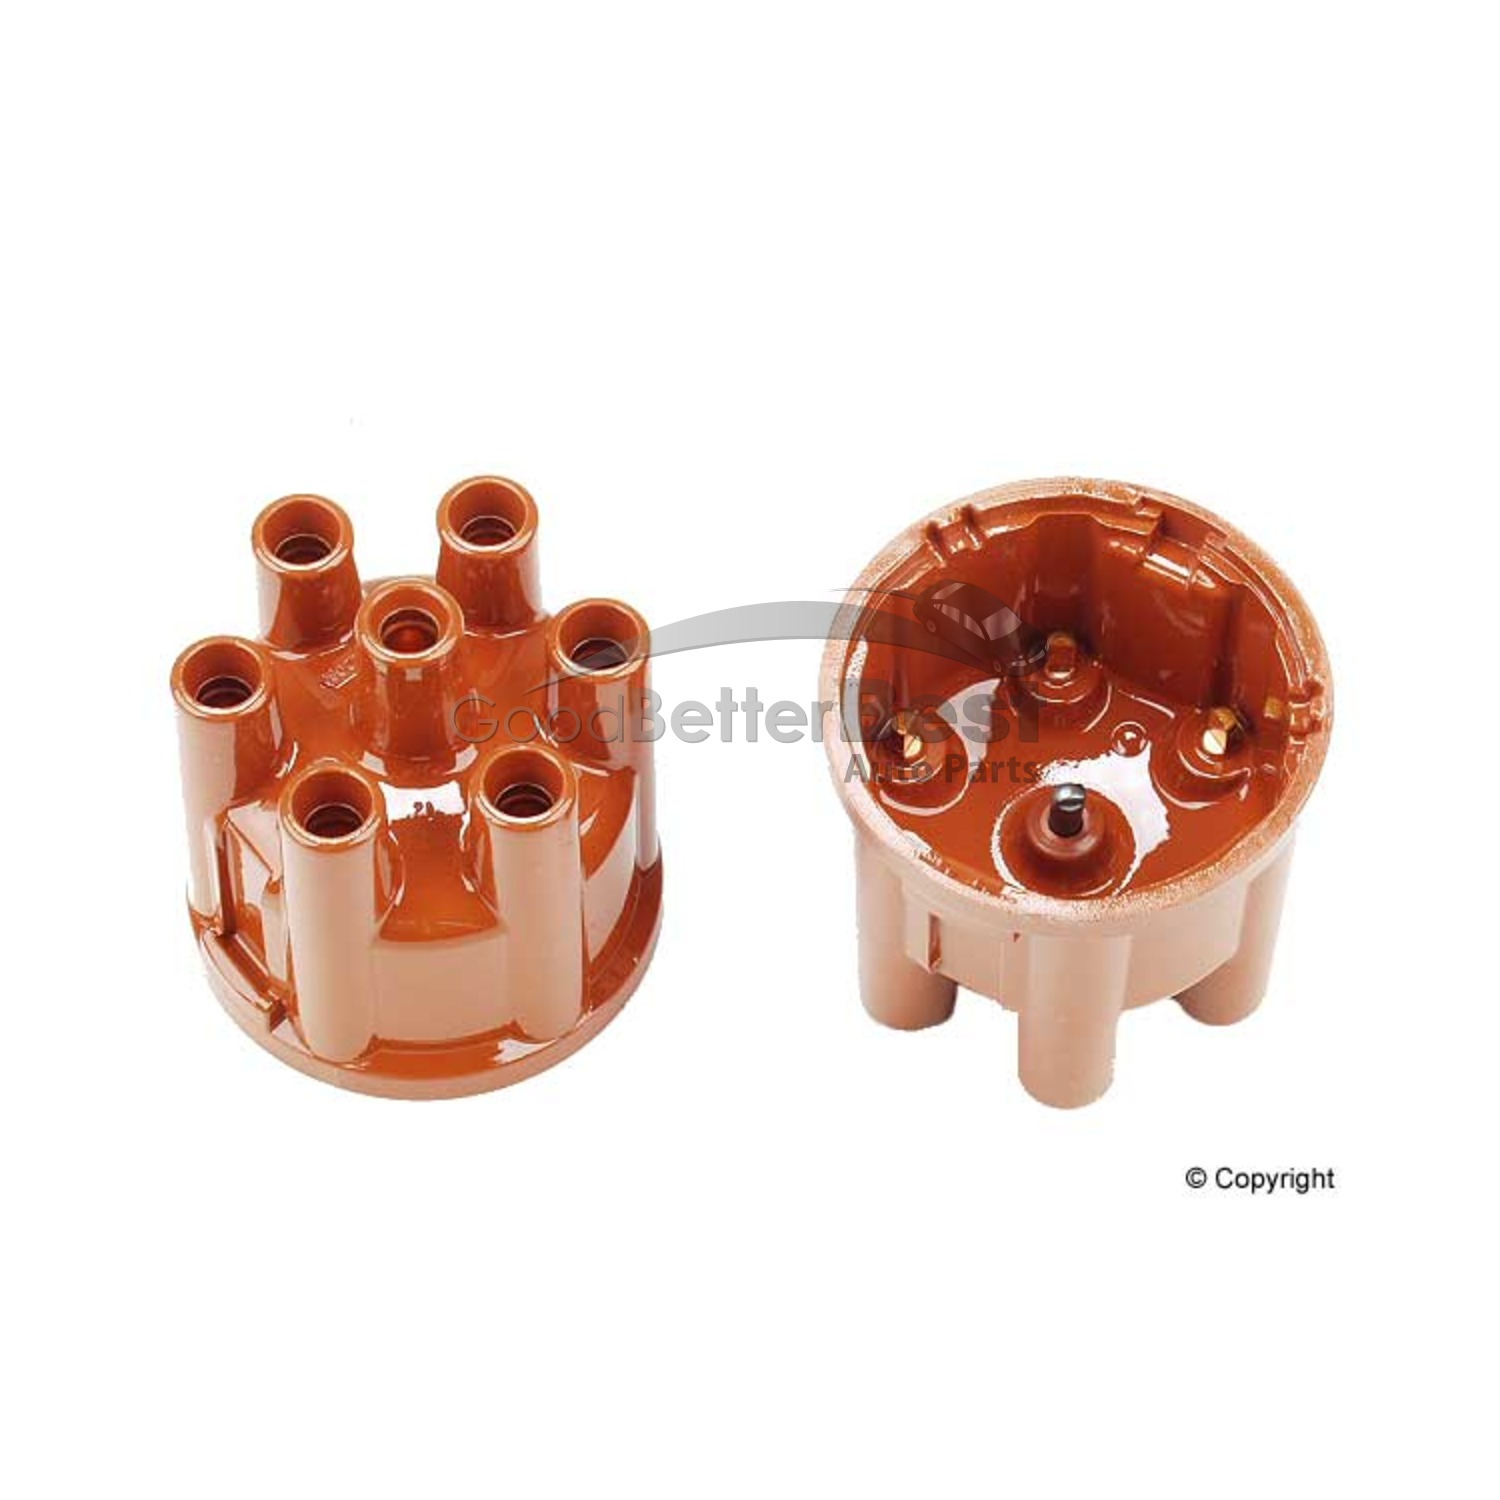 One New Bosch Distributor Rotor 04018 243922 for Mercedes for Porsche for Volvo